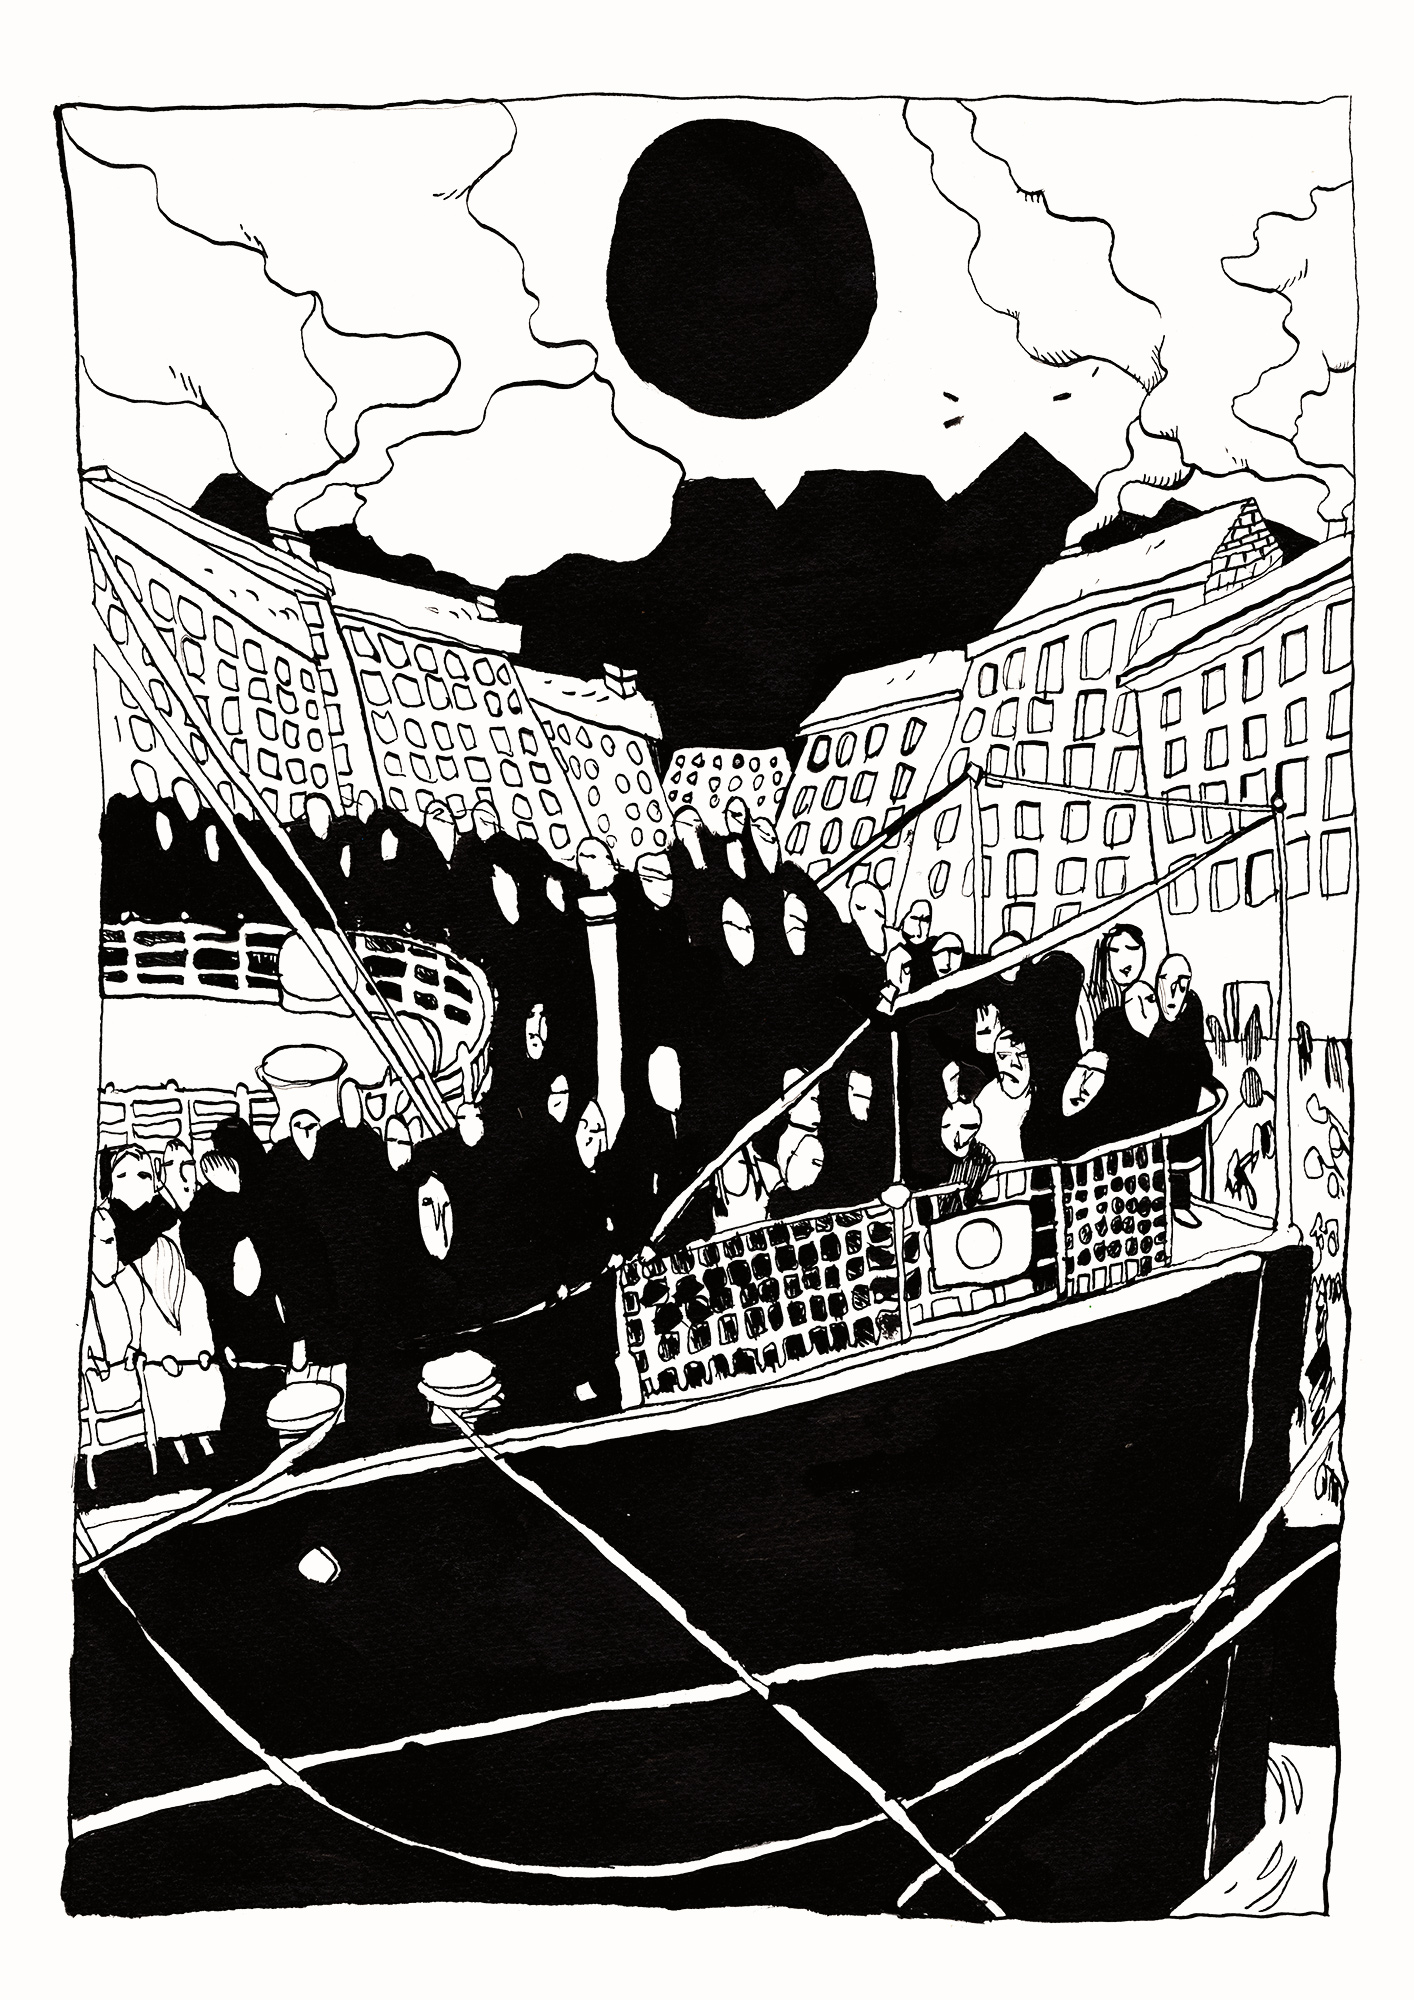 art-prints, giclee, figurative, illustrative, cartoons, oceans, sailing, transportation, black, white, ink, paper, black-and-white, boats, decorative, design, interior, modern, modern-art, posters, prints, sea, travel, Buy original high quality art. Paintings, drawings, limited edition prints & posters by talented artists.